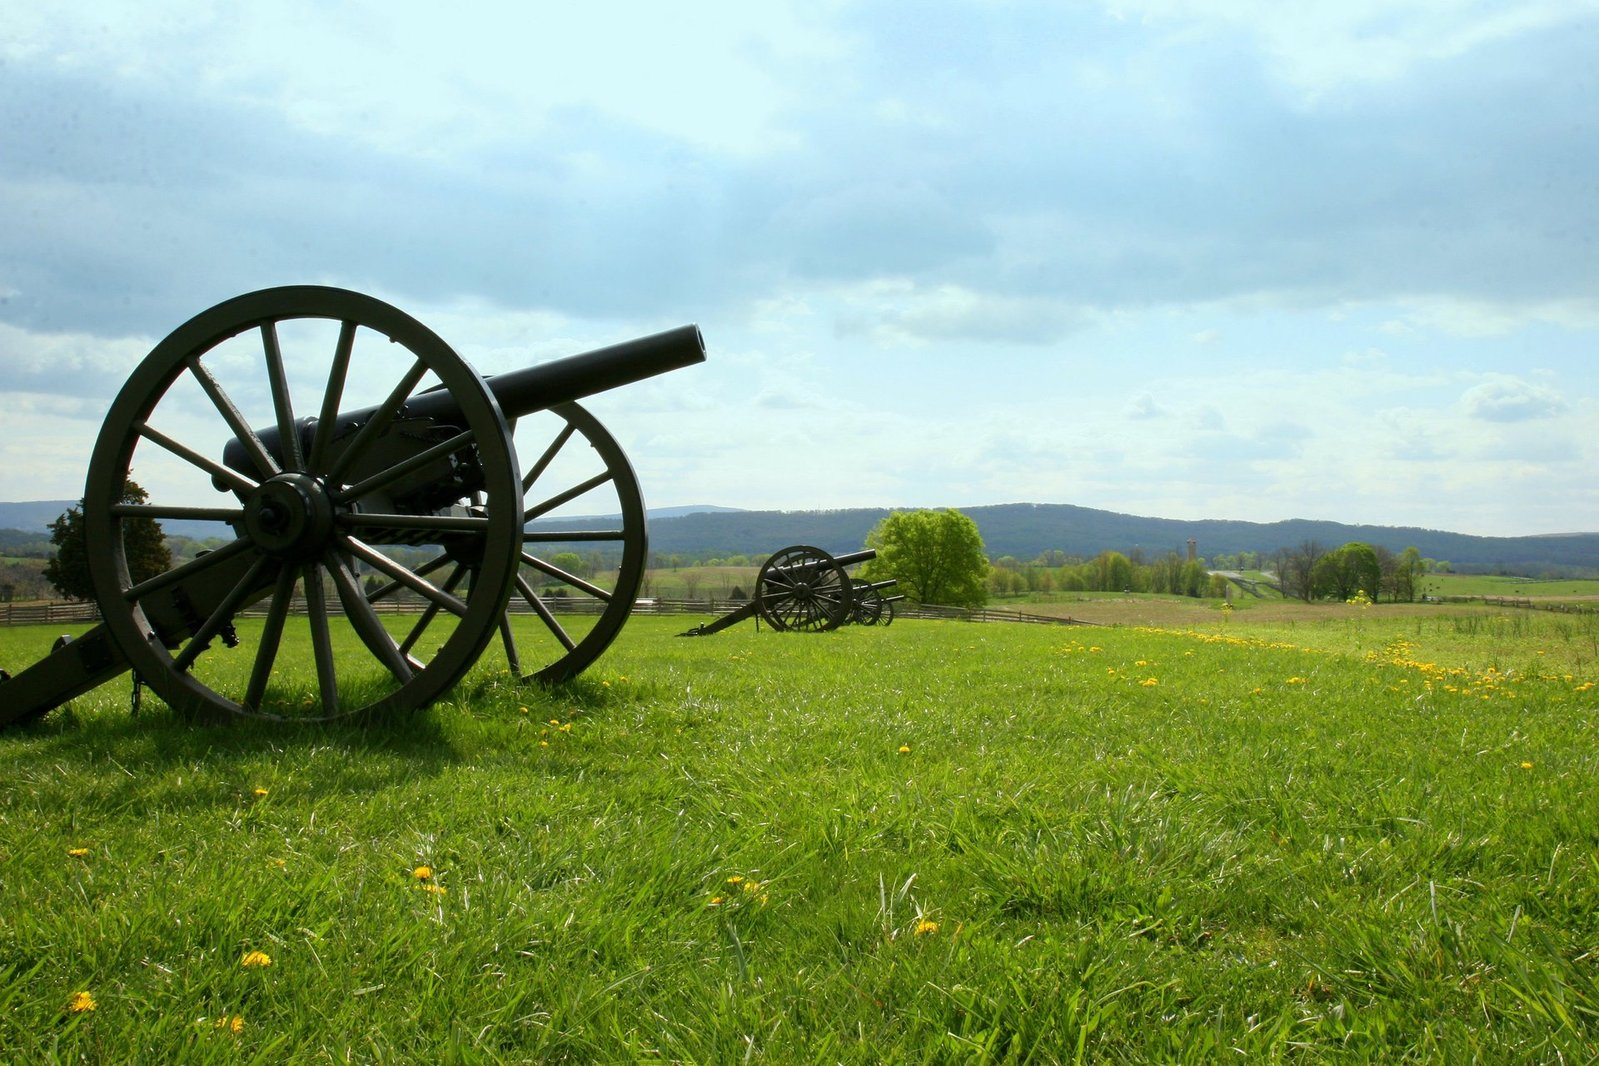 cannon-at-antietam-2-1179089-1599x1066